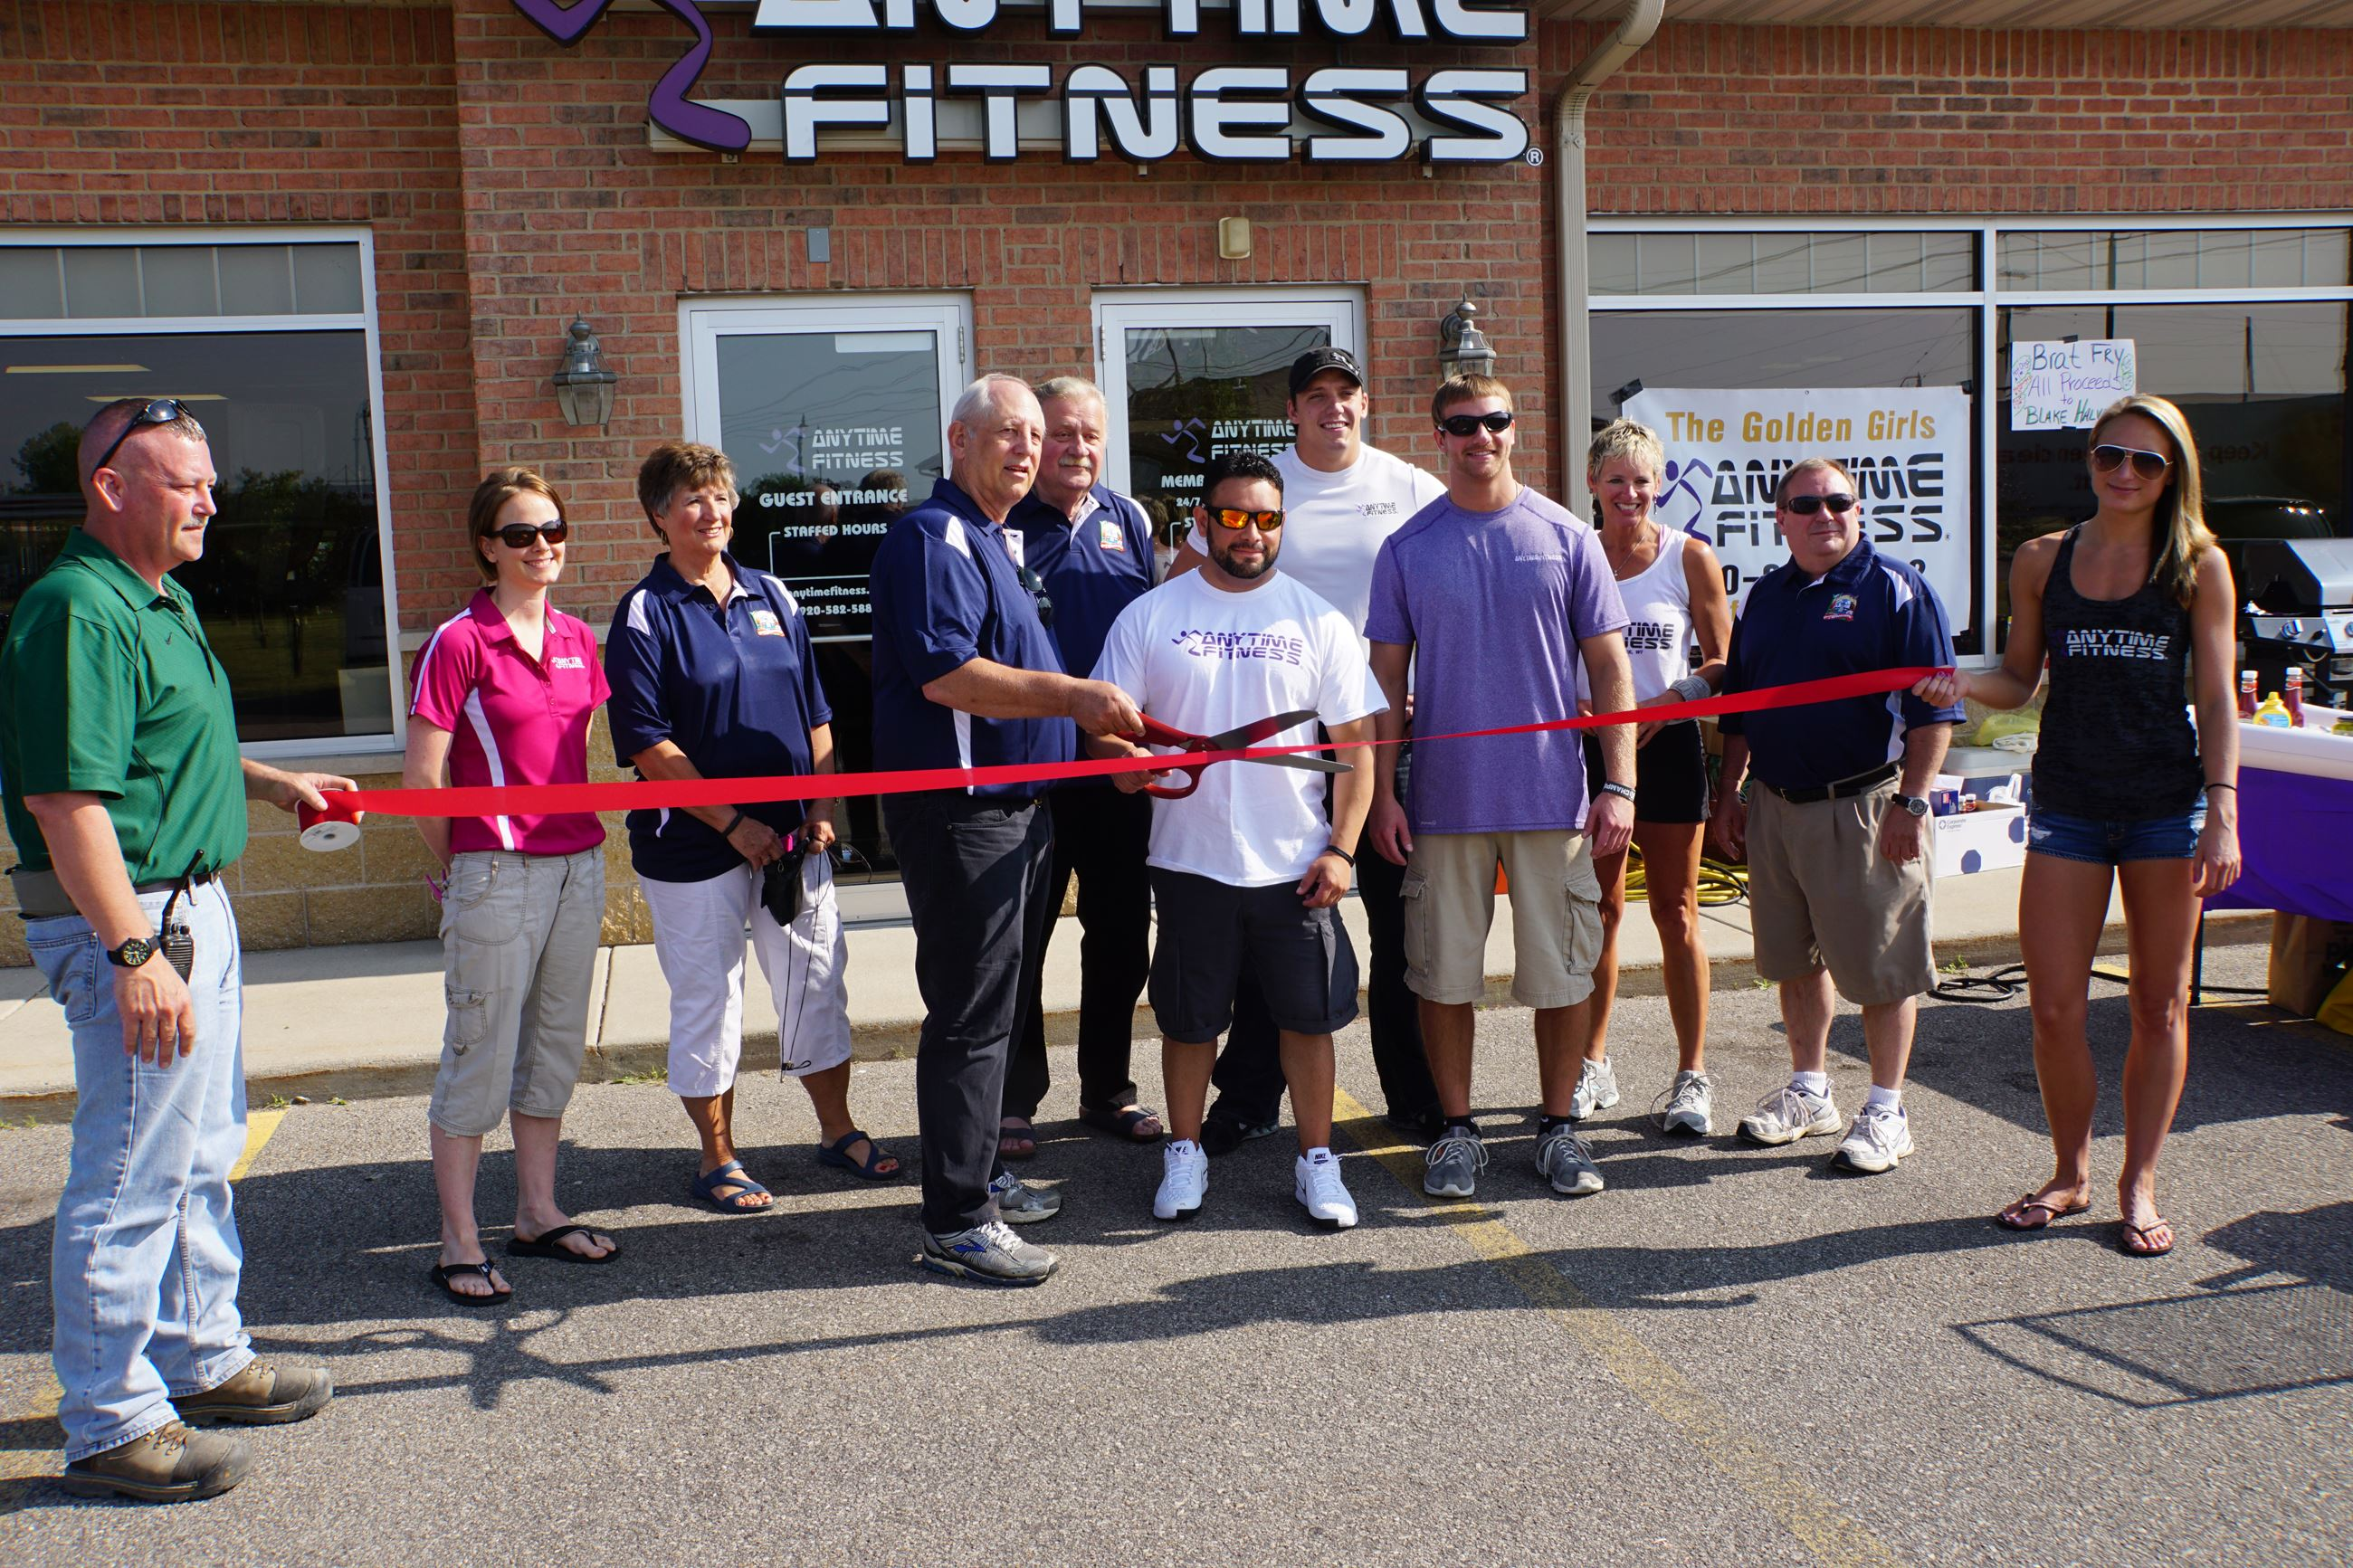 Anytime Fitness Grand Re-Opening